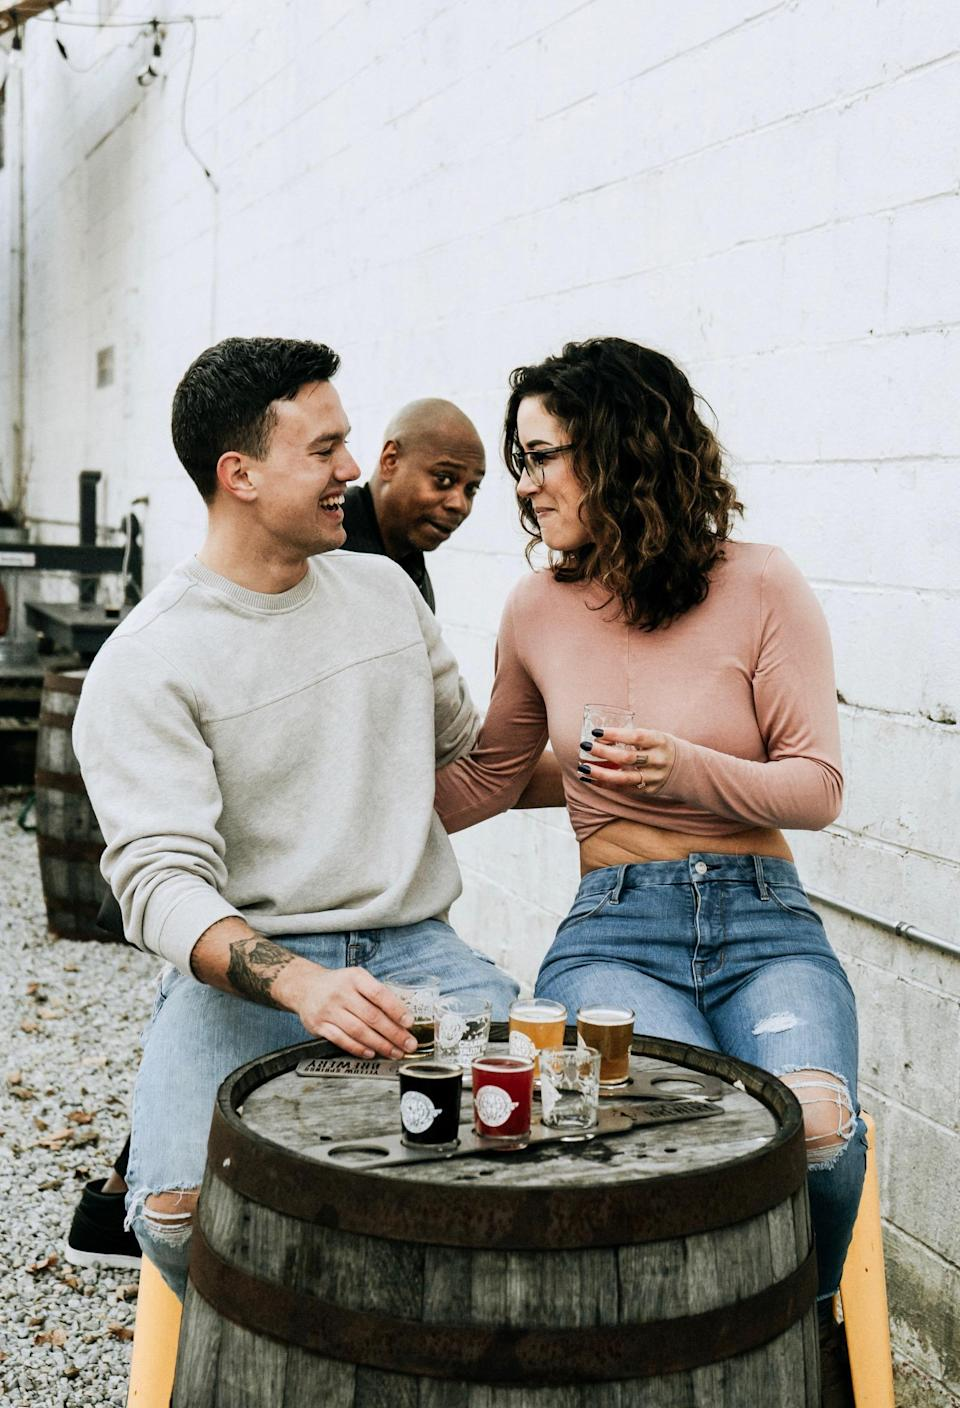 Dave Chappelle photobombed an engagement shoot in Ohio. (Photo: Jaycee Marie Photography)